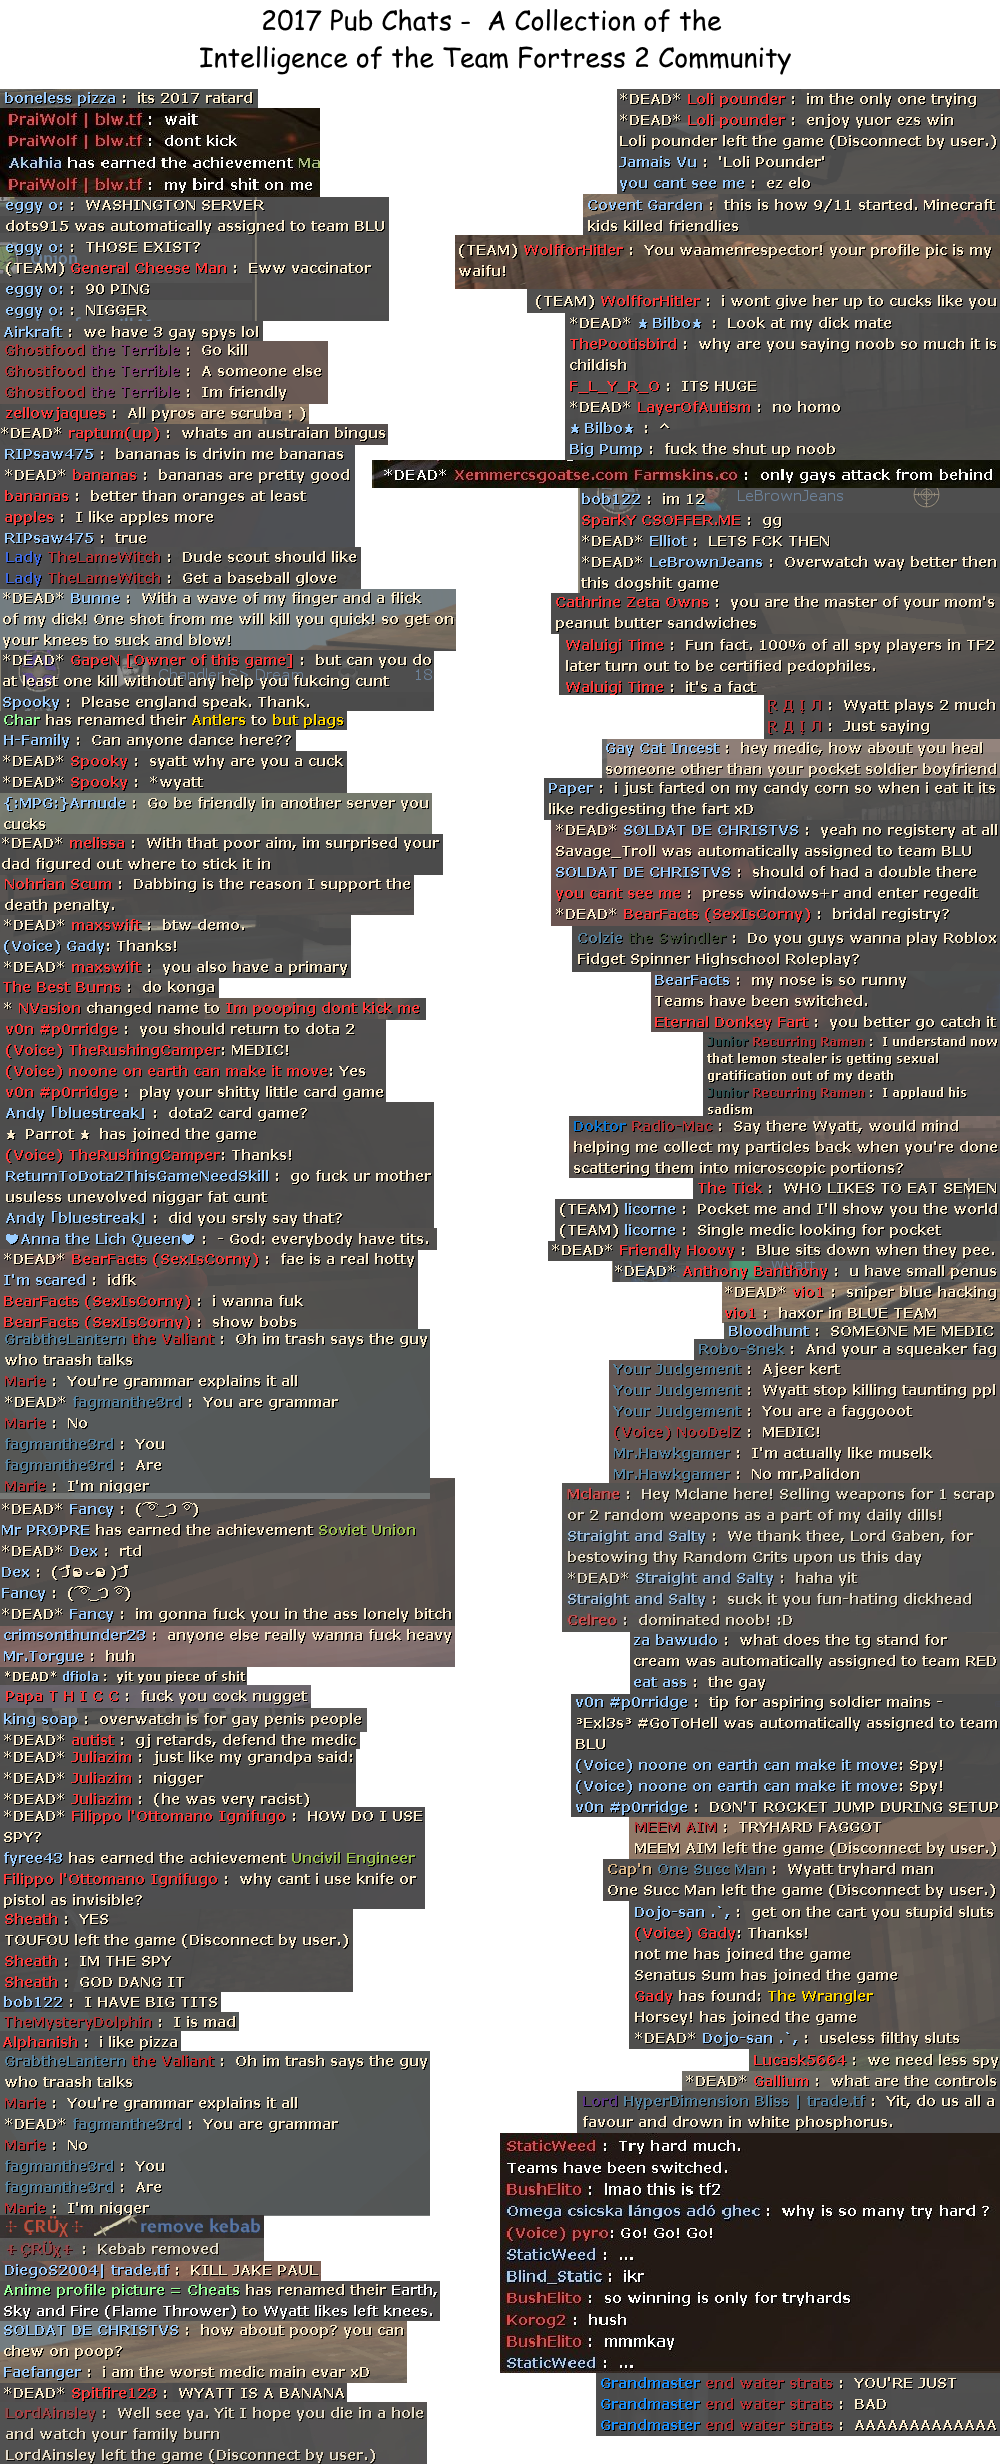 The poorly made 2017 pub chat compilation games teamfortress2 steam tf2